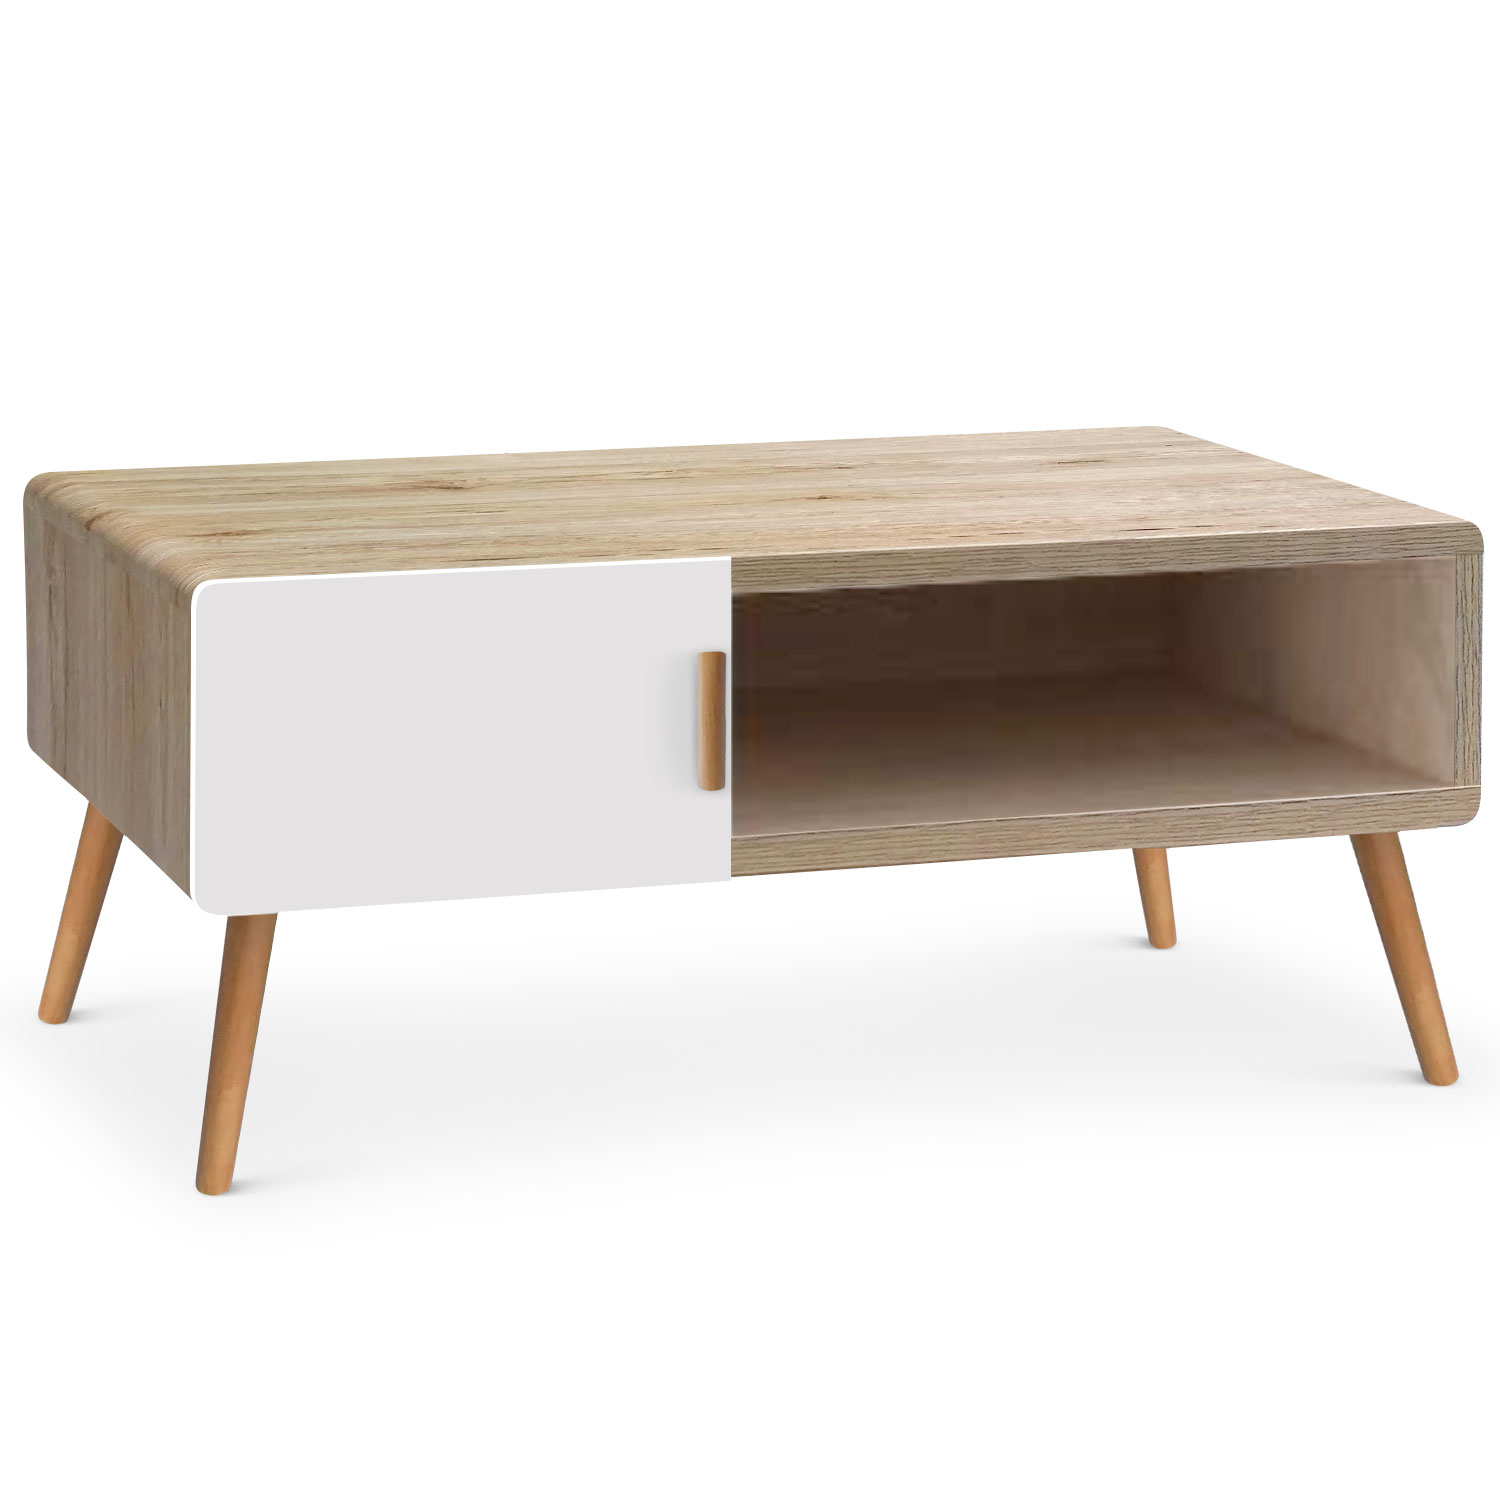 Table basse scandinave Amanda Chªne clair et Blanc